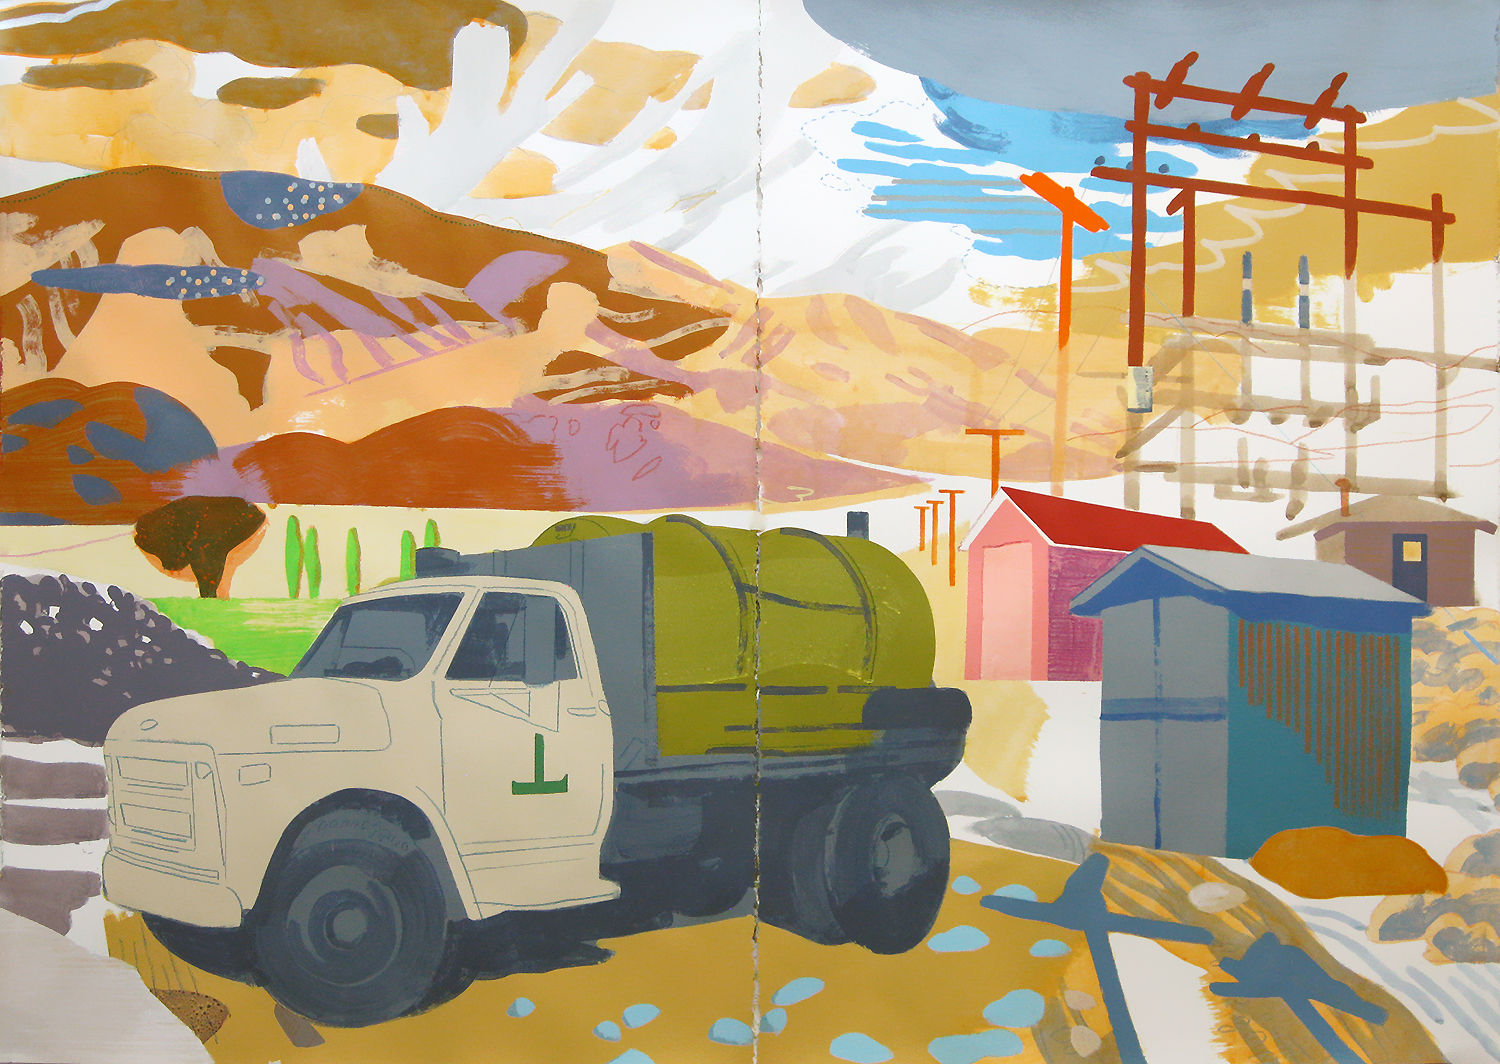 "Water Truck, Deep Springs CA, mixed media on paper, 44 x 60"" (private collection, Washington)"